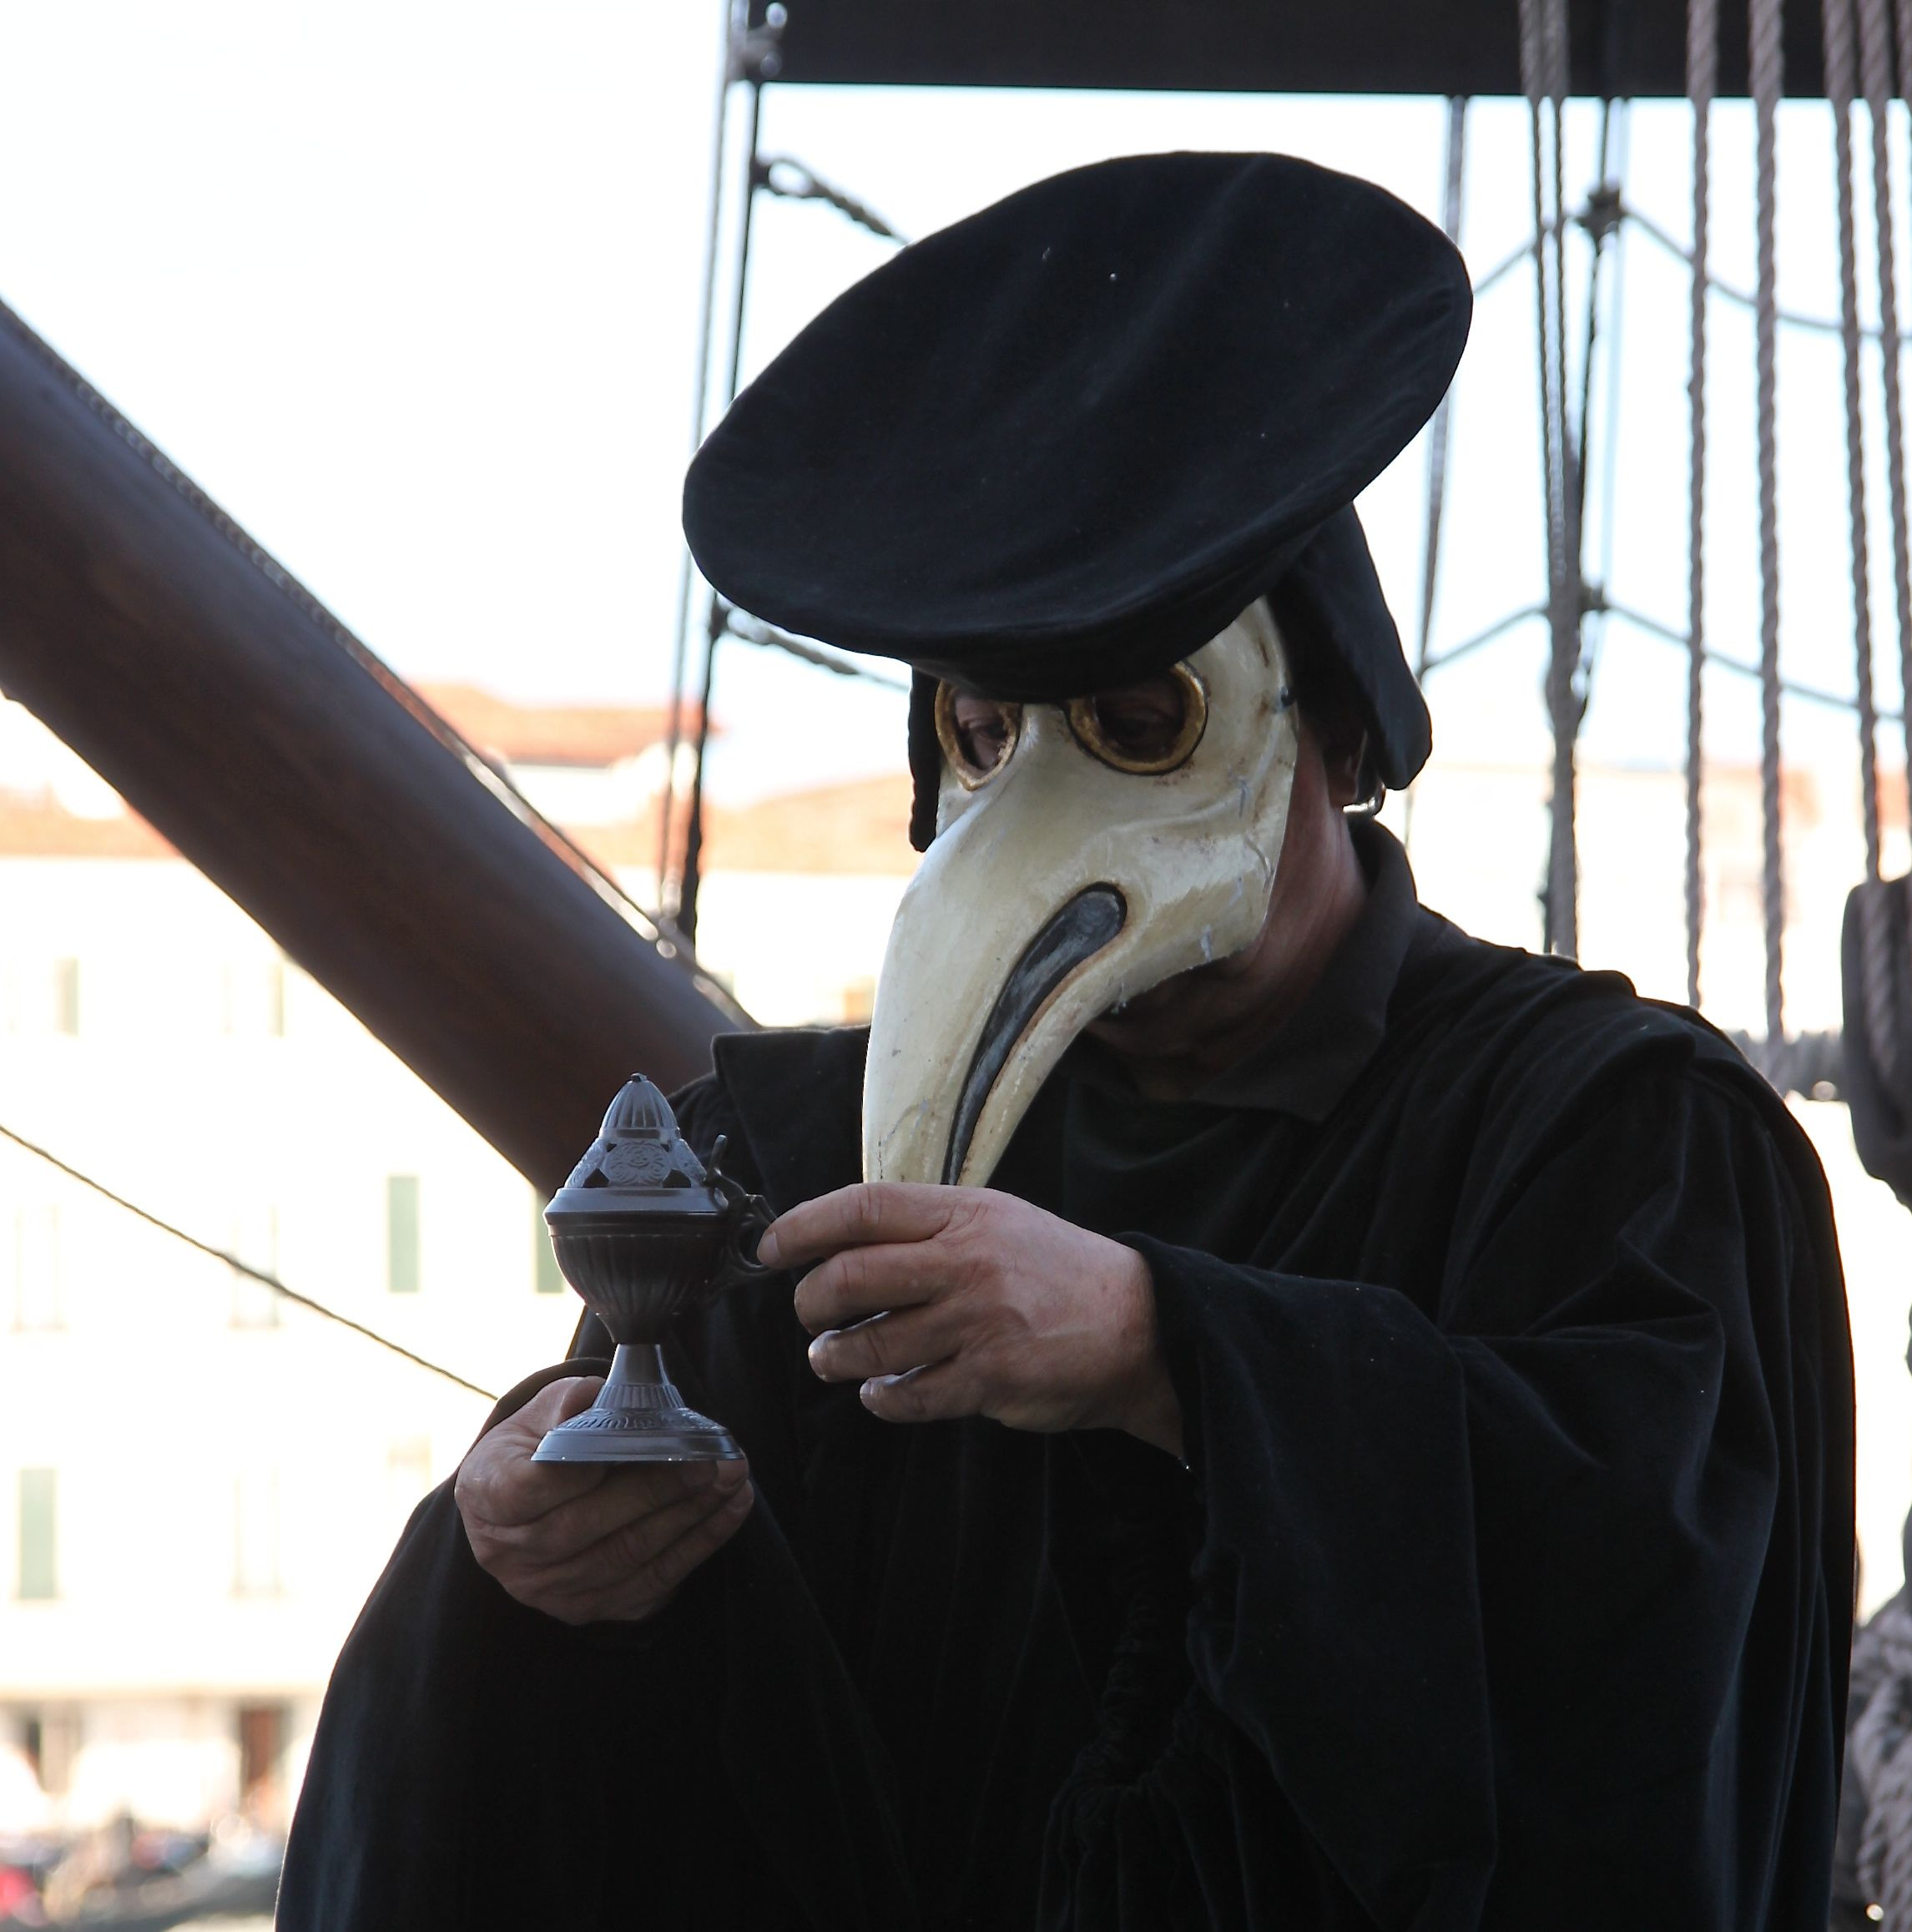 The plague doctor fumigates patients with the smoke from burning herbs